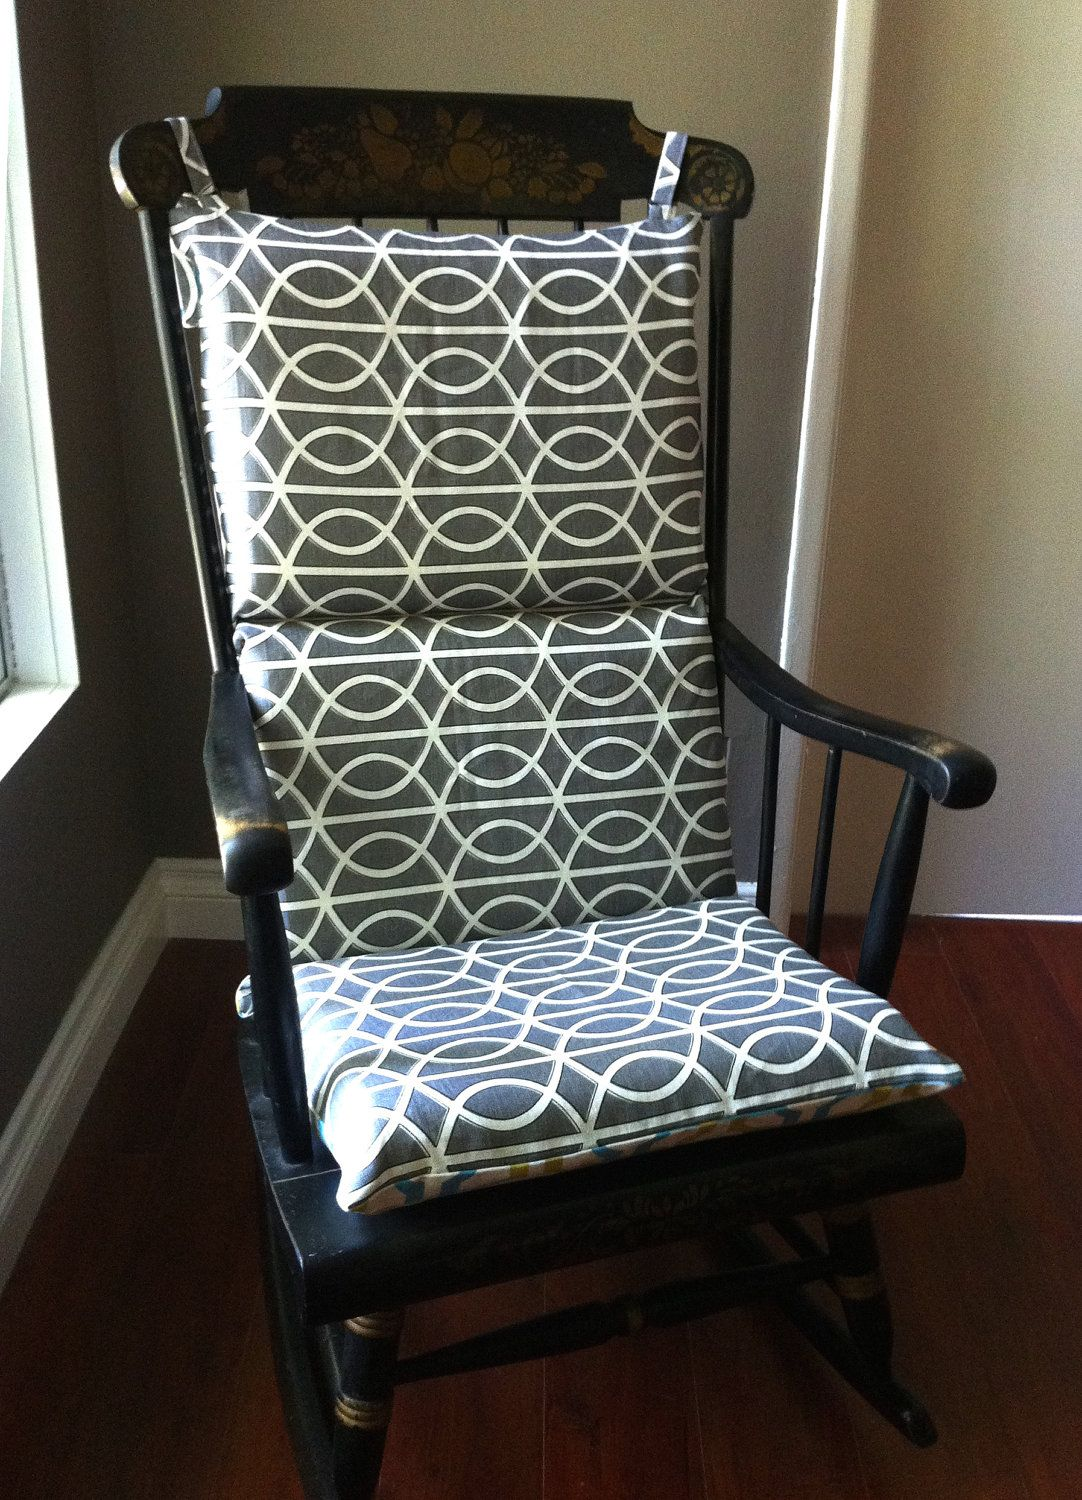 Glider Rocking Chair Cushion Pattern Reclining Outdoor Chairs Canada Cover Looks Double Sided And Easier